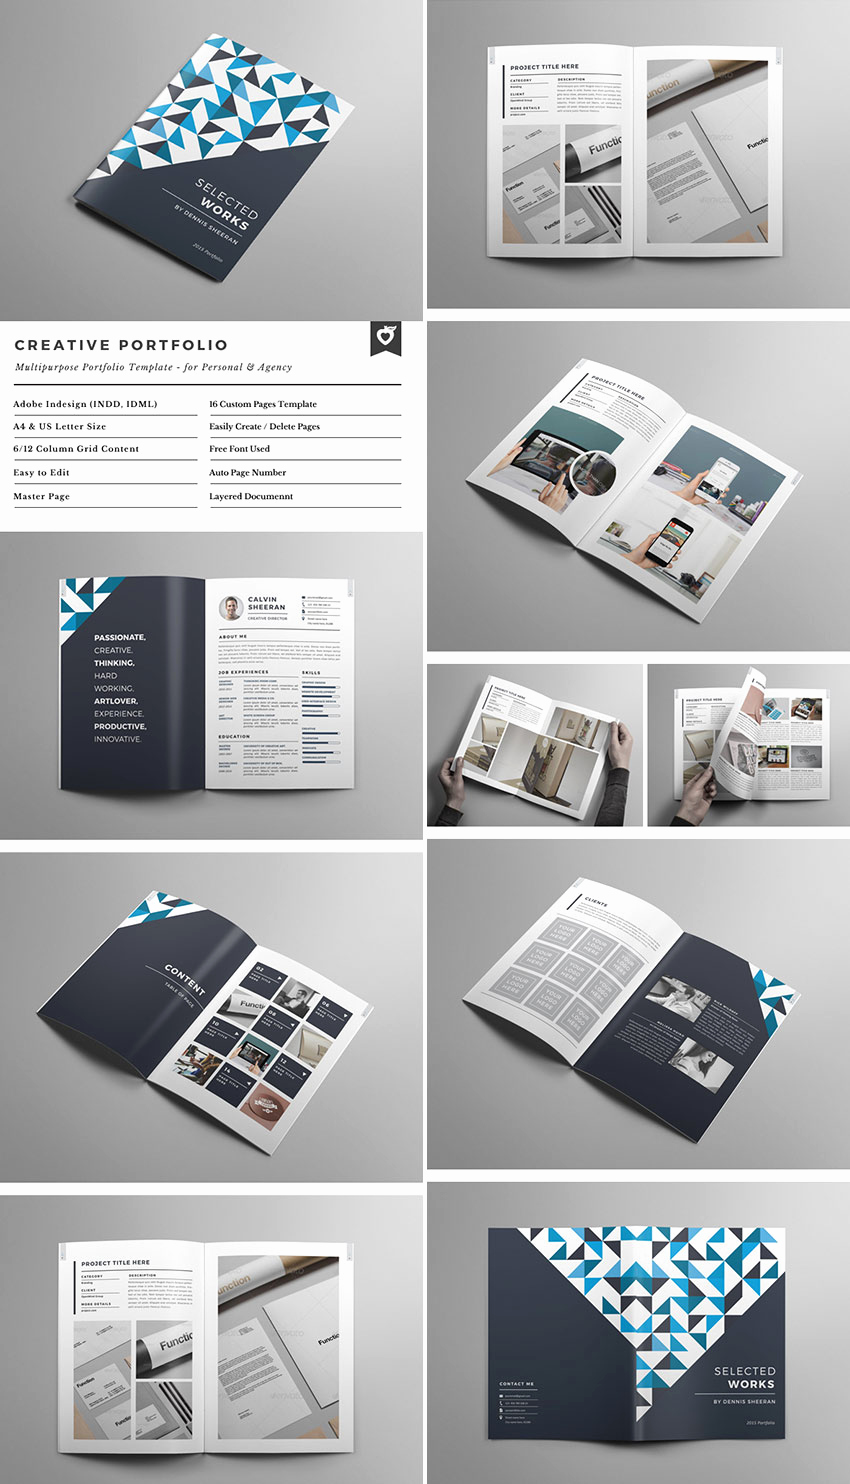 Free Indesign Brochure Templates Beautiful 20 Best Indesign Brochure Templates for Creative